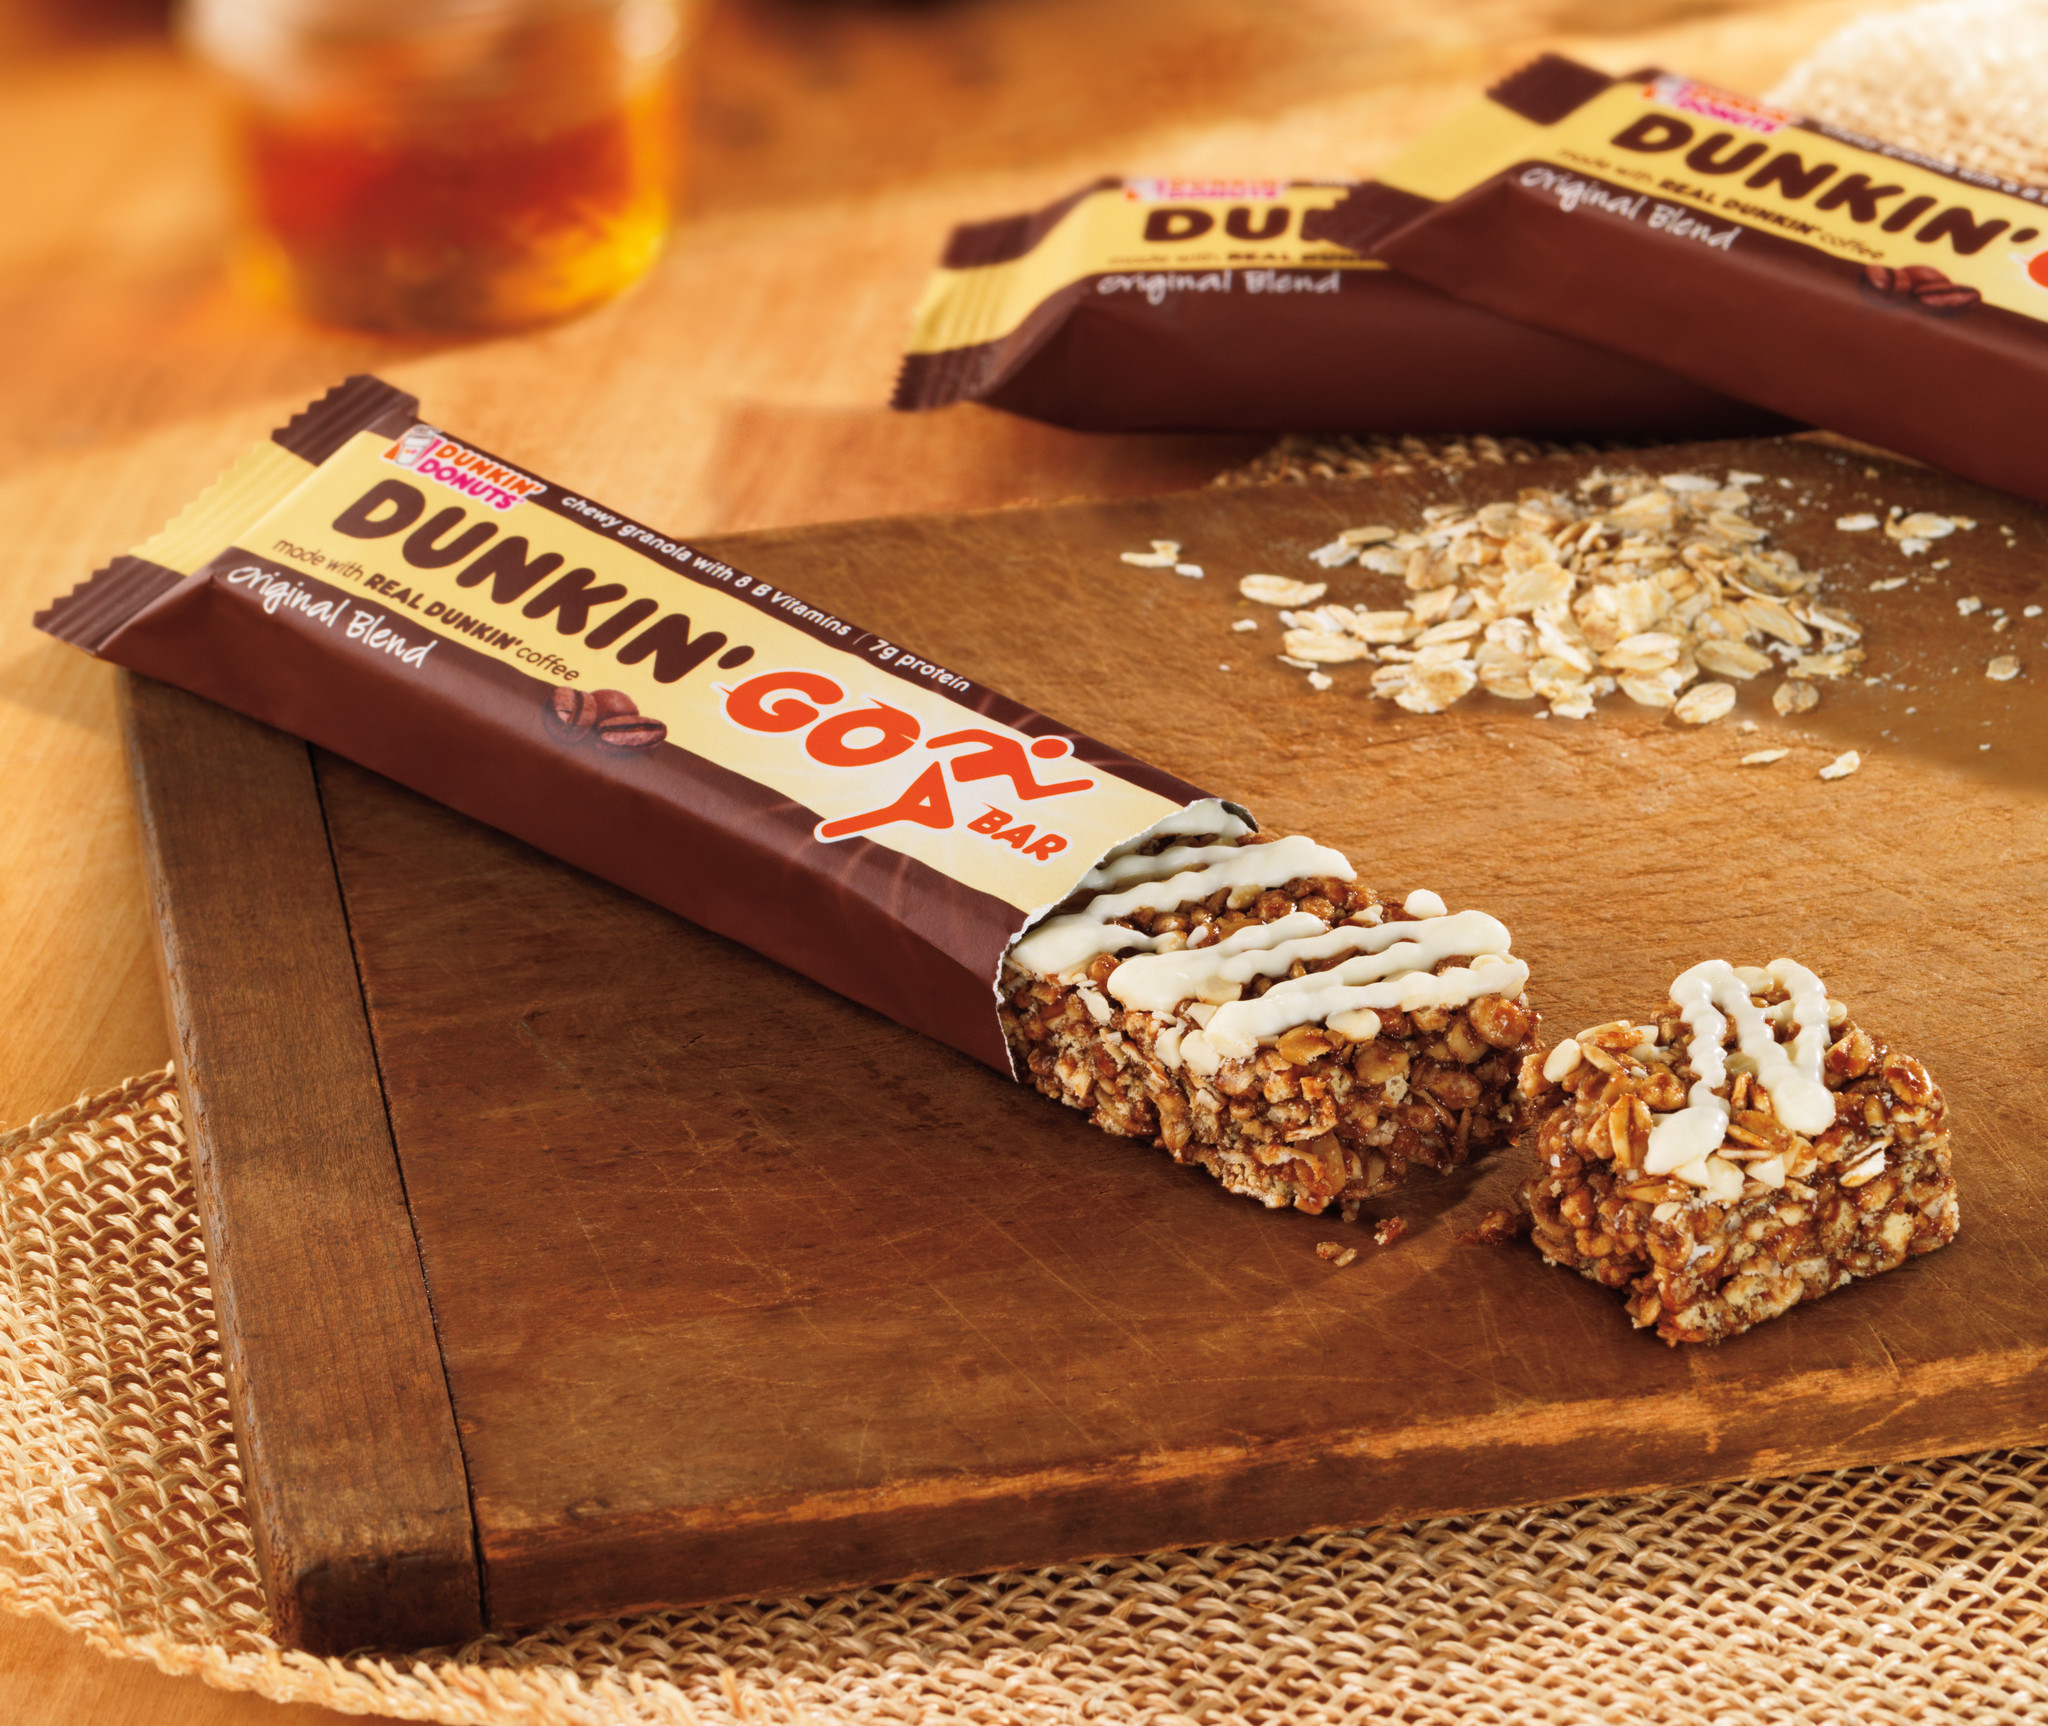 New granola bars at Dunkin' Donuts. And of course they're coffee-flavored